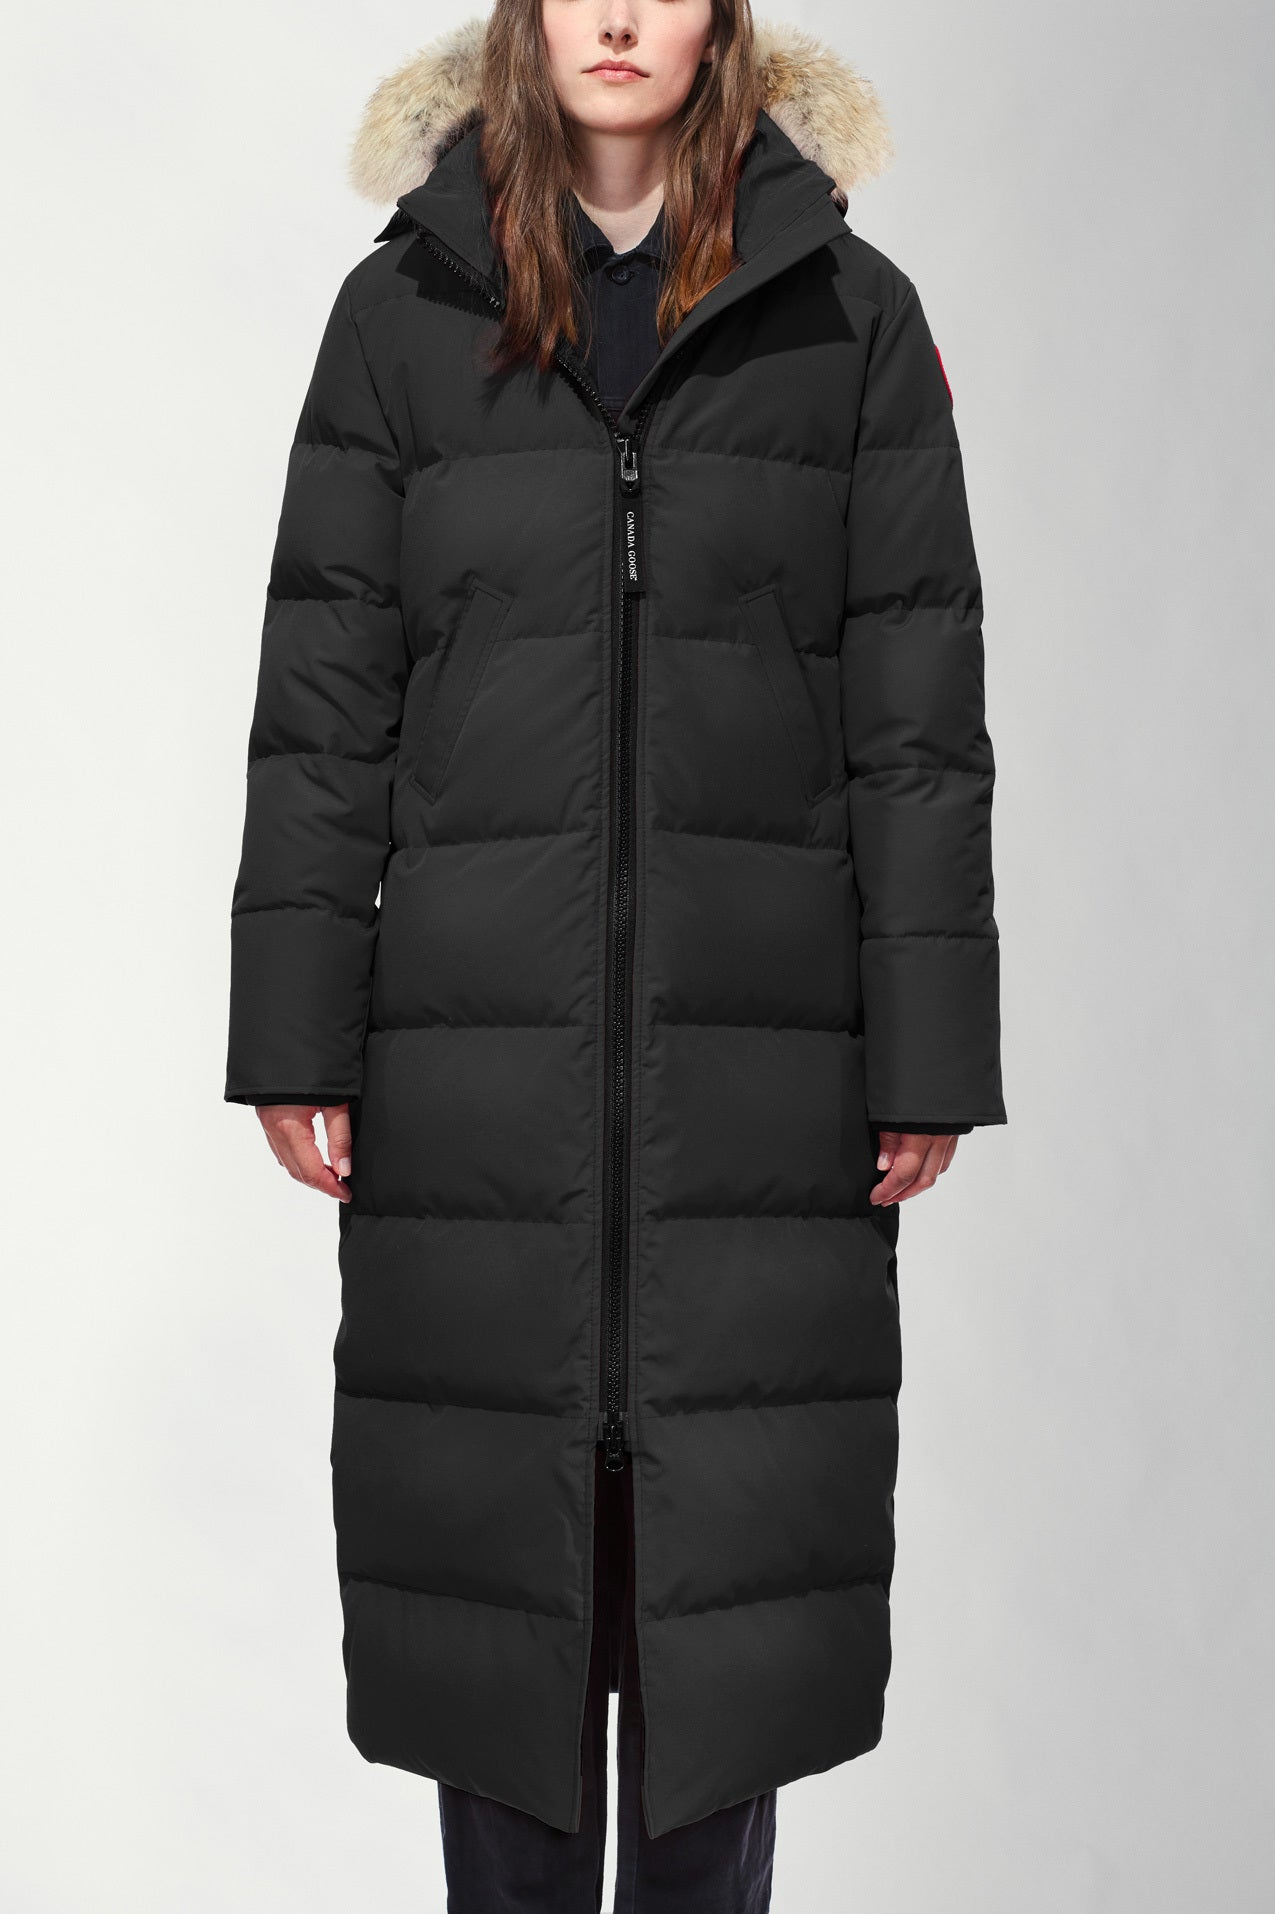 Mystique Parka-Canada Goose-Over the Rainbow